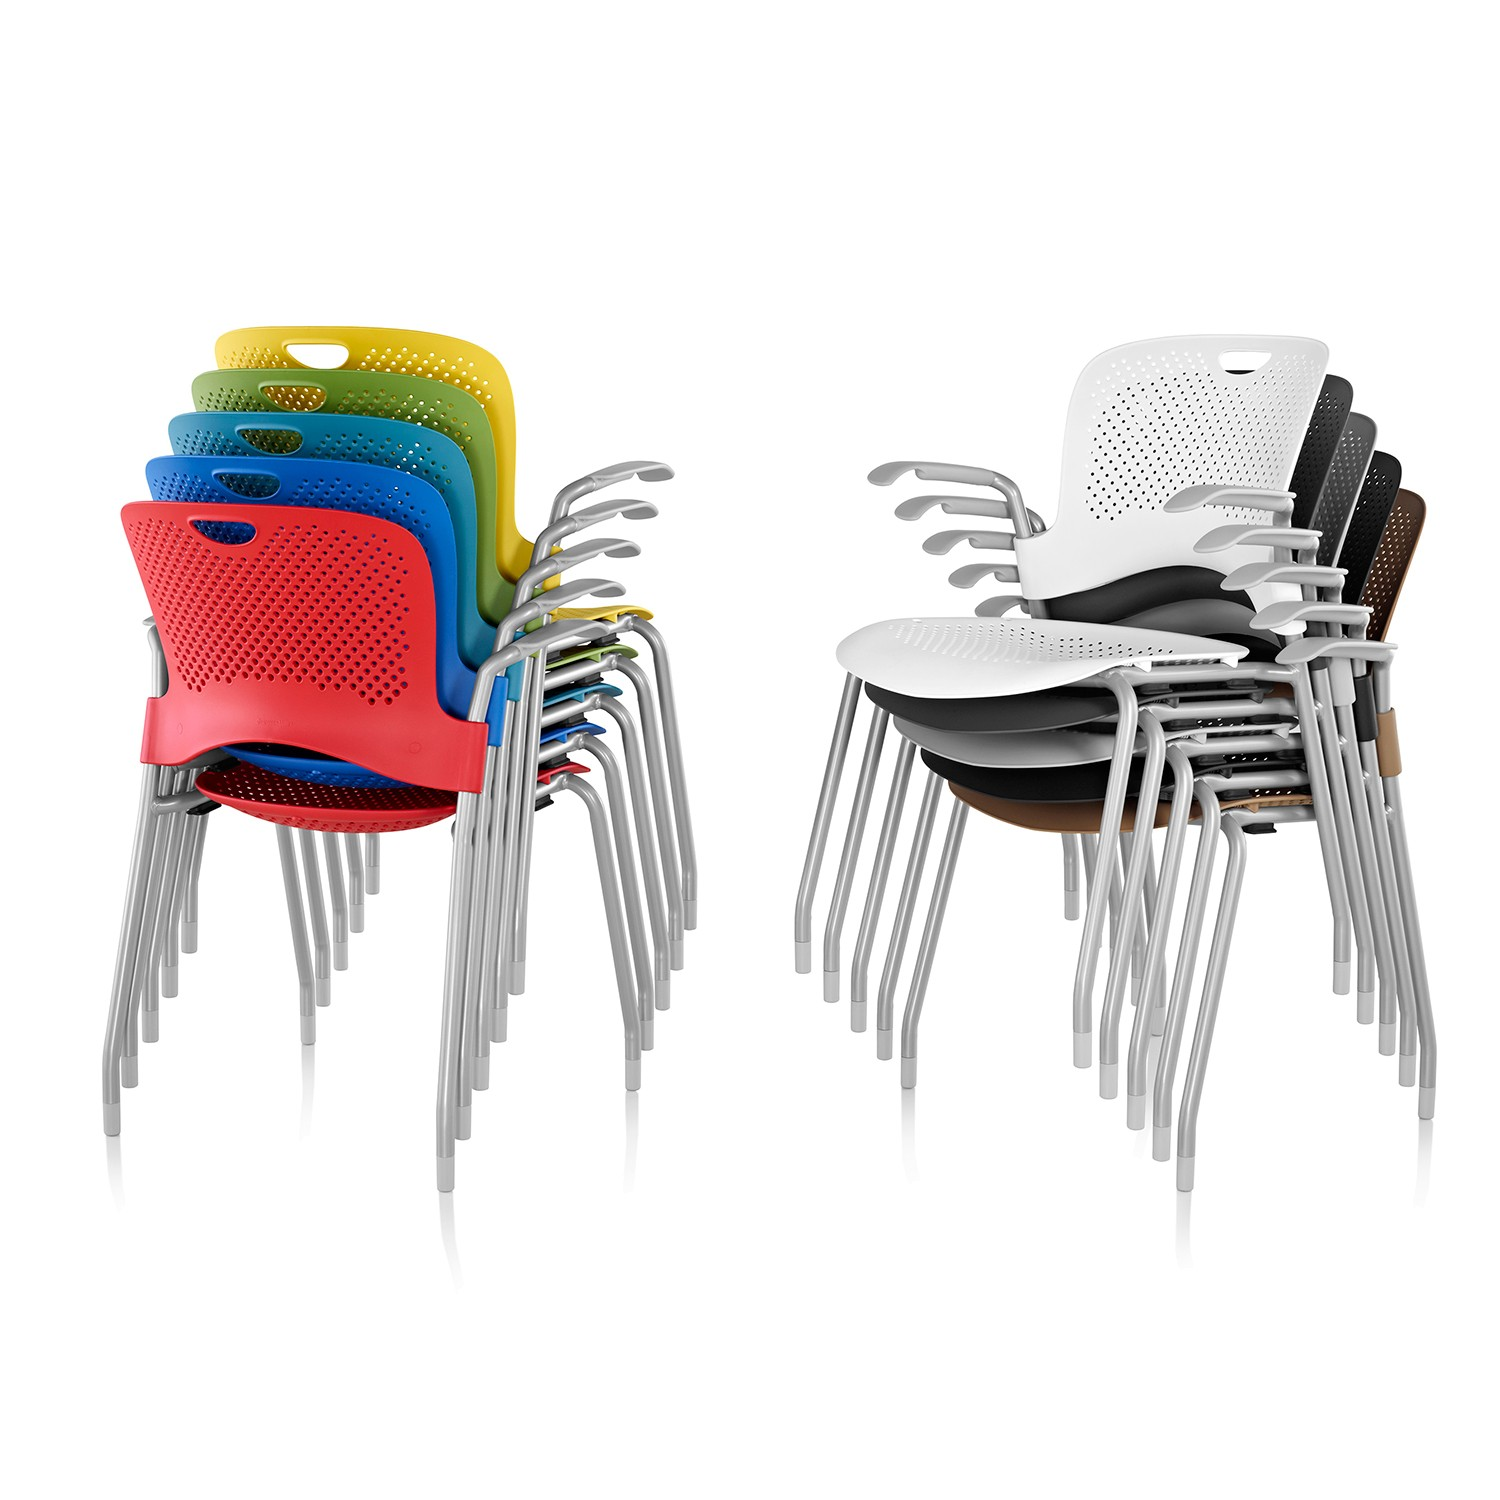 caper_stacking_chair_gallery_1.jpg